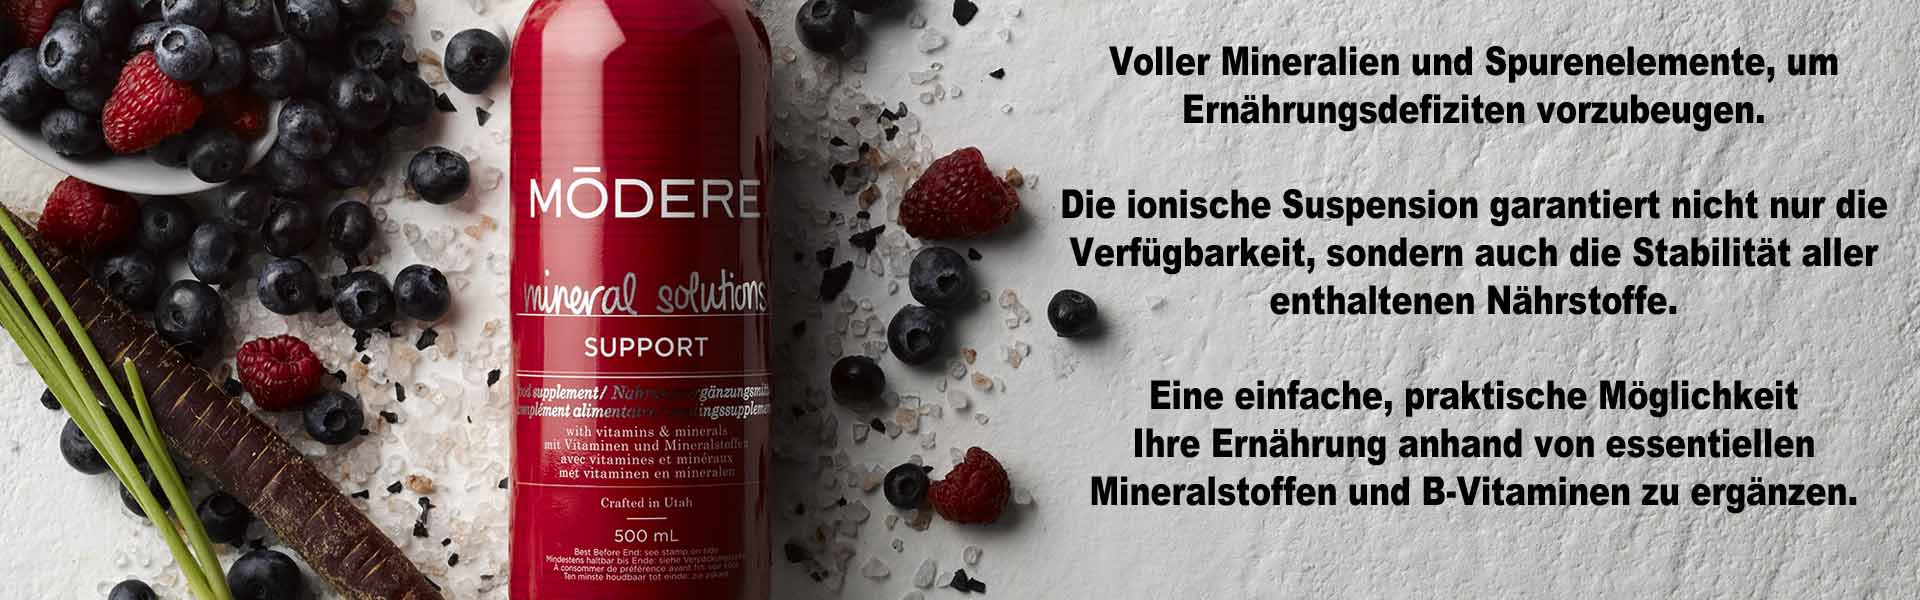 MODERE-Mineral-Solutions